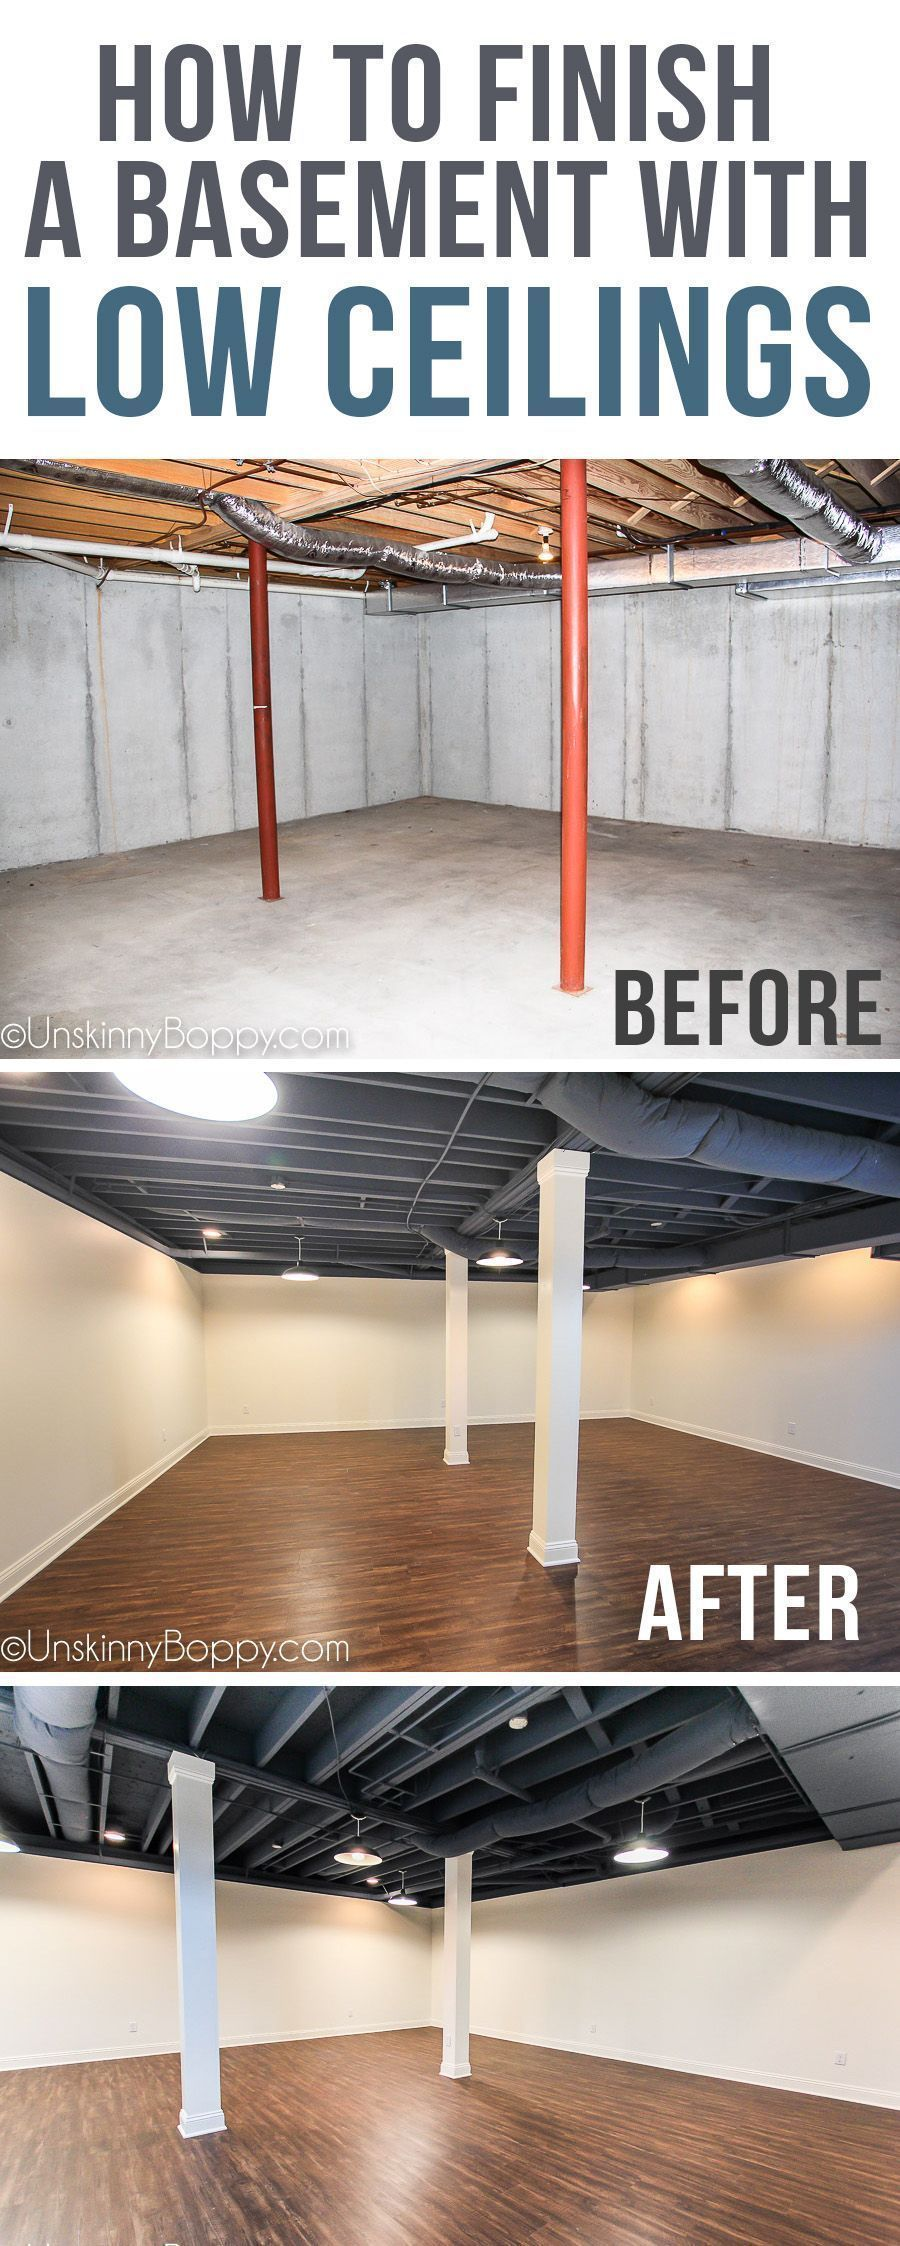 Ideas On A Budget How To Make An Unfinished Basement Livable Ceiling Wall Covering Est Way Finish